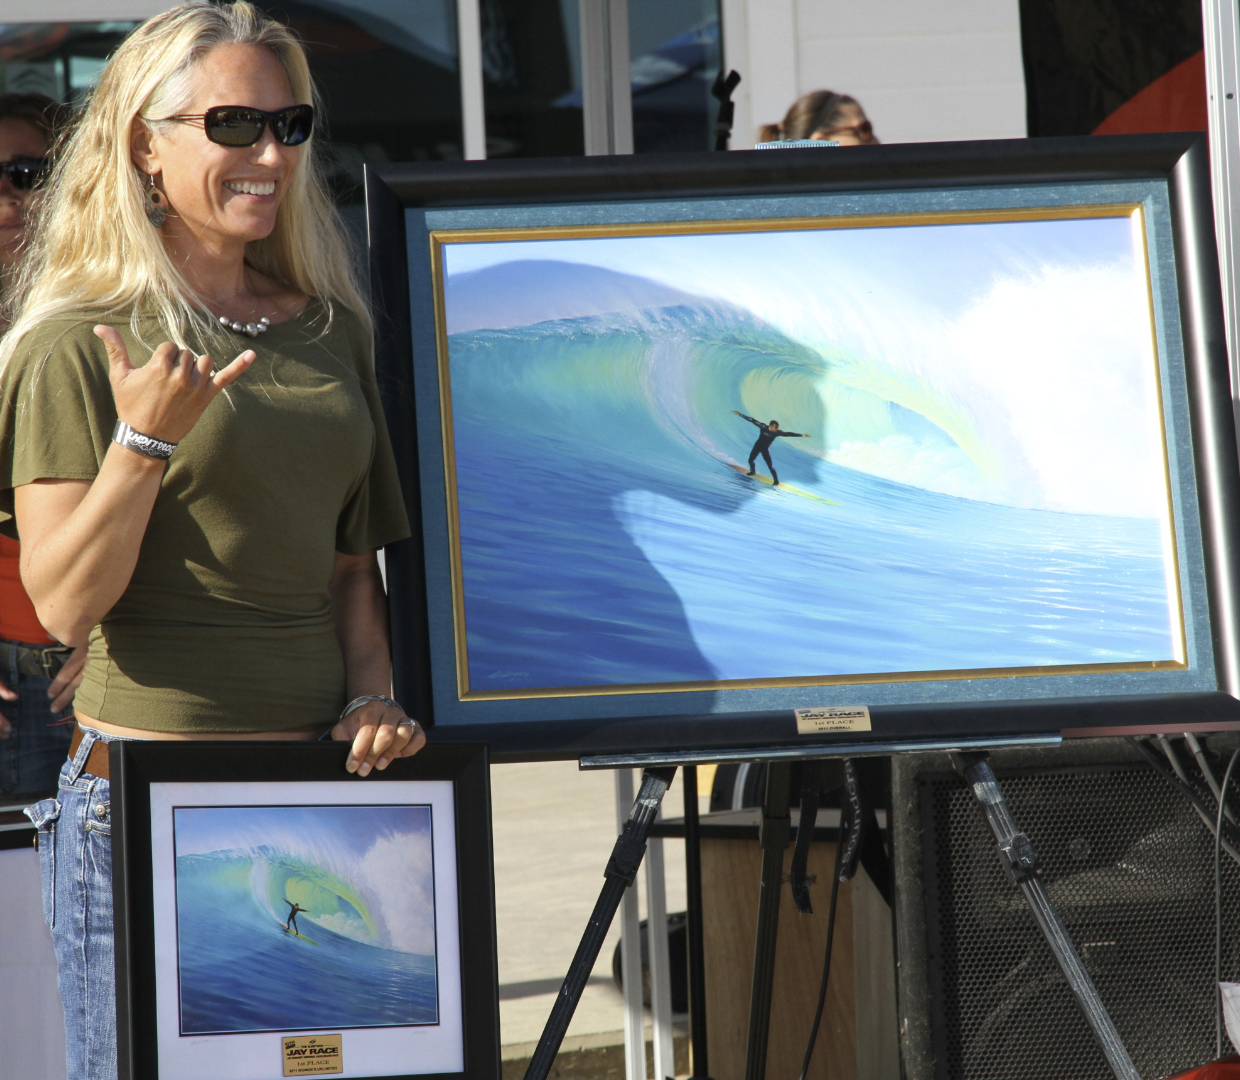 Kim And Jay Moriarity http://hikanesa.blogspot.com/2011/07/jay-moriarity-race-2011.html